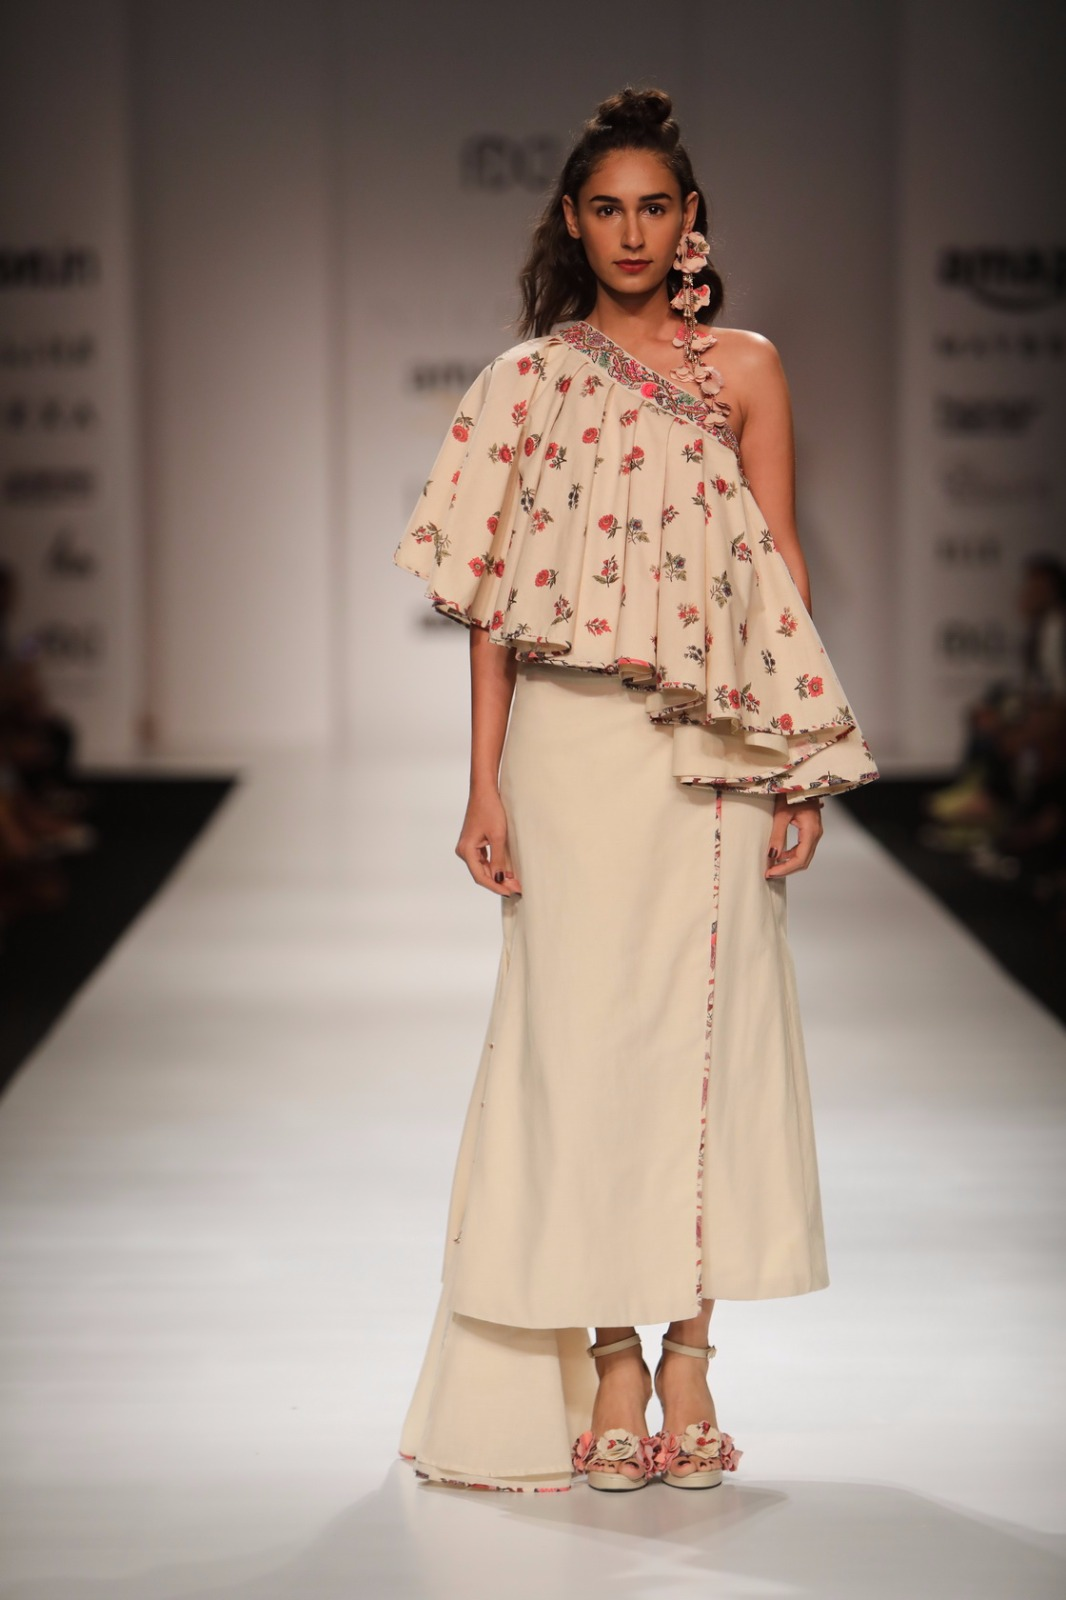 http://www.talksassy.com/wp-content/uploads/2017/03/Amazon-India-Fashion-Week-Autumn-Winter-2017-28.jpg